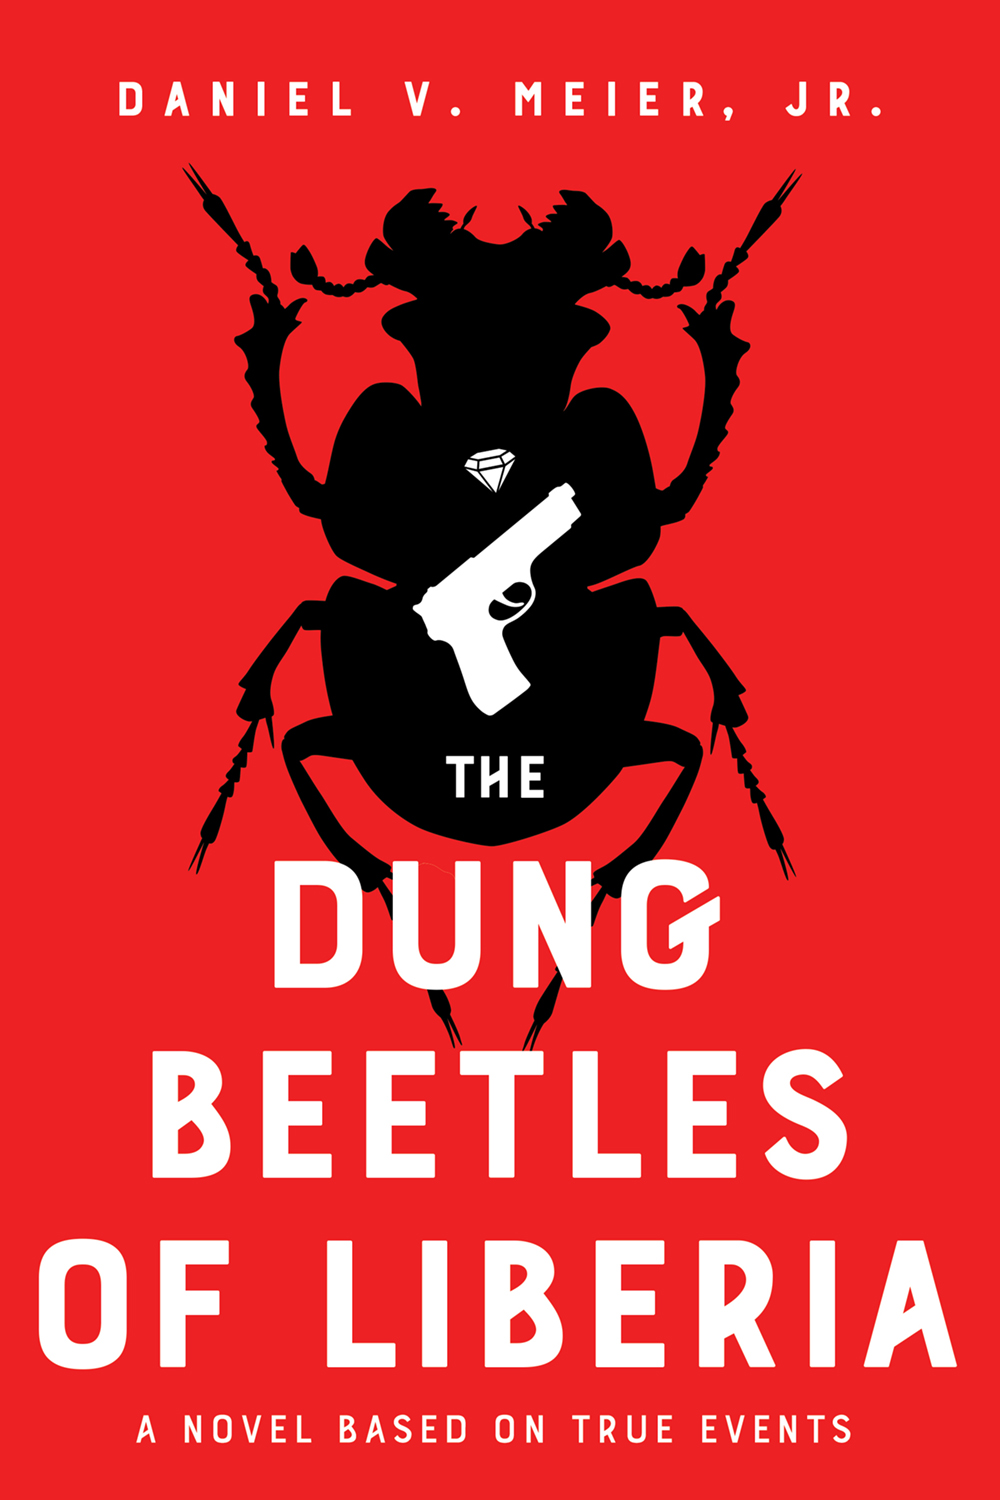 THE DUNG BEETLES OF LIBERIA, A Novel Based on True Events